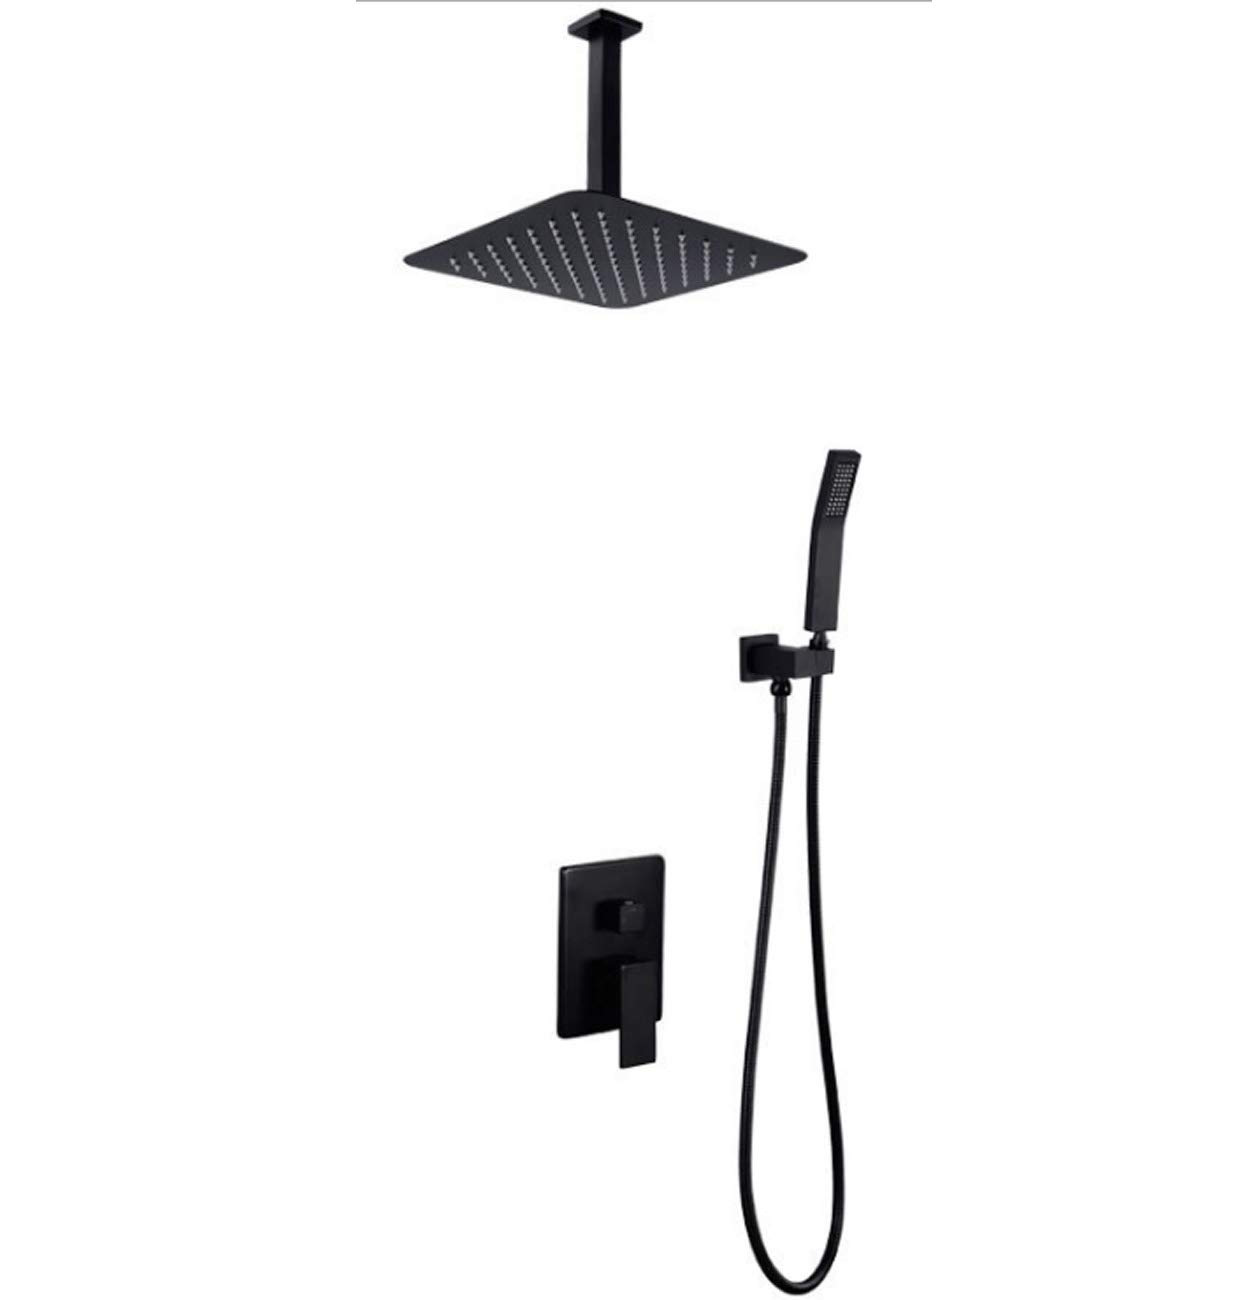 Concealed Shower Mixer Set for Bath Dual Control Shower System with Square Top Shower + Handheld Shower Head + Brass Diverter,Ceiling Type,10inch